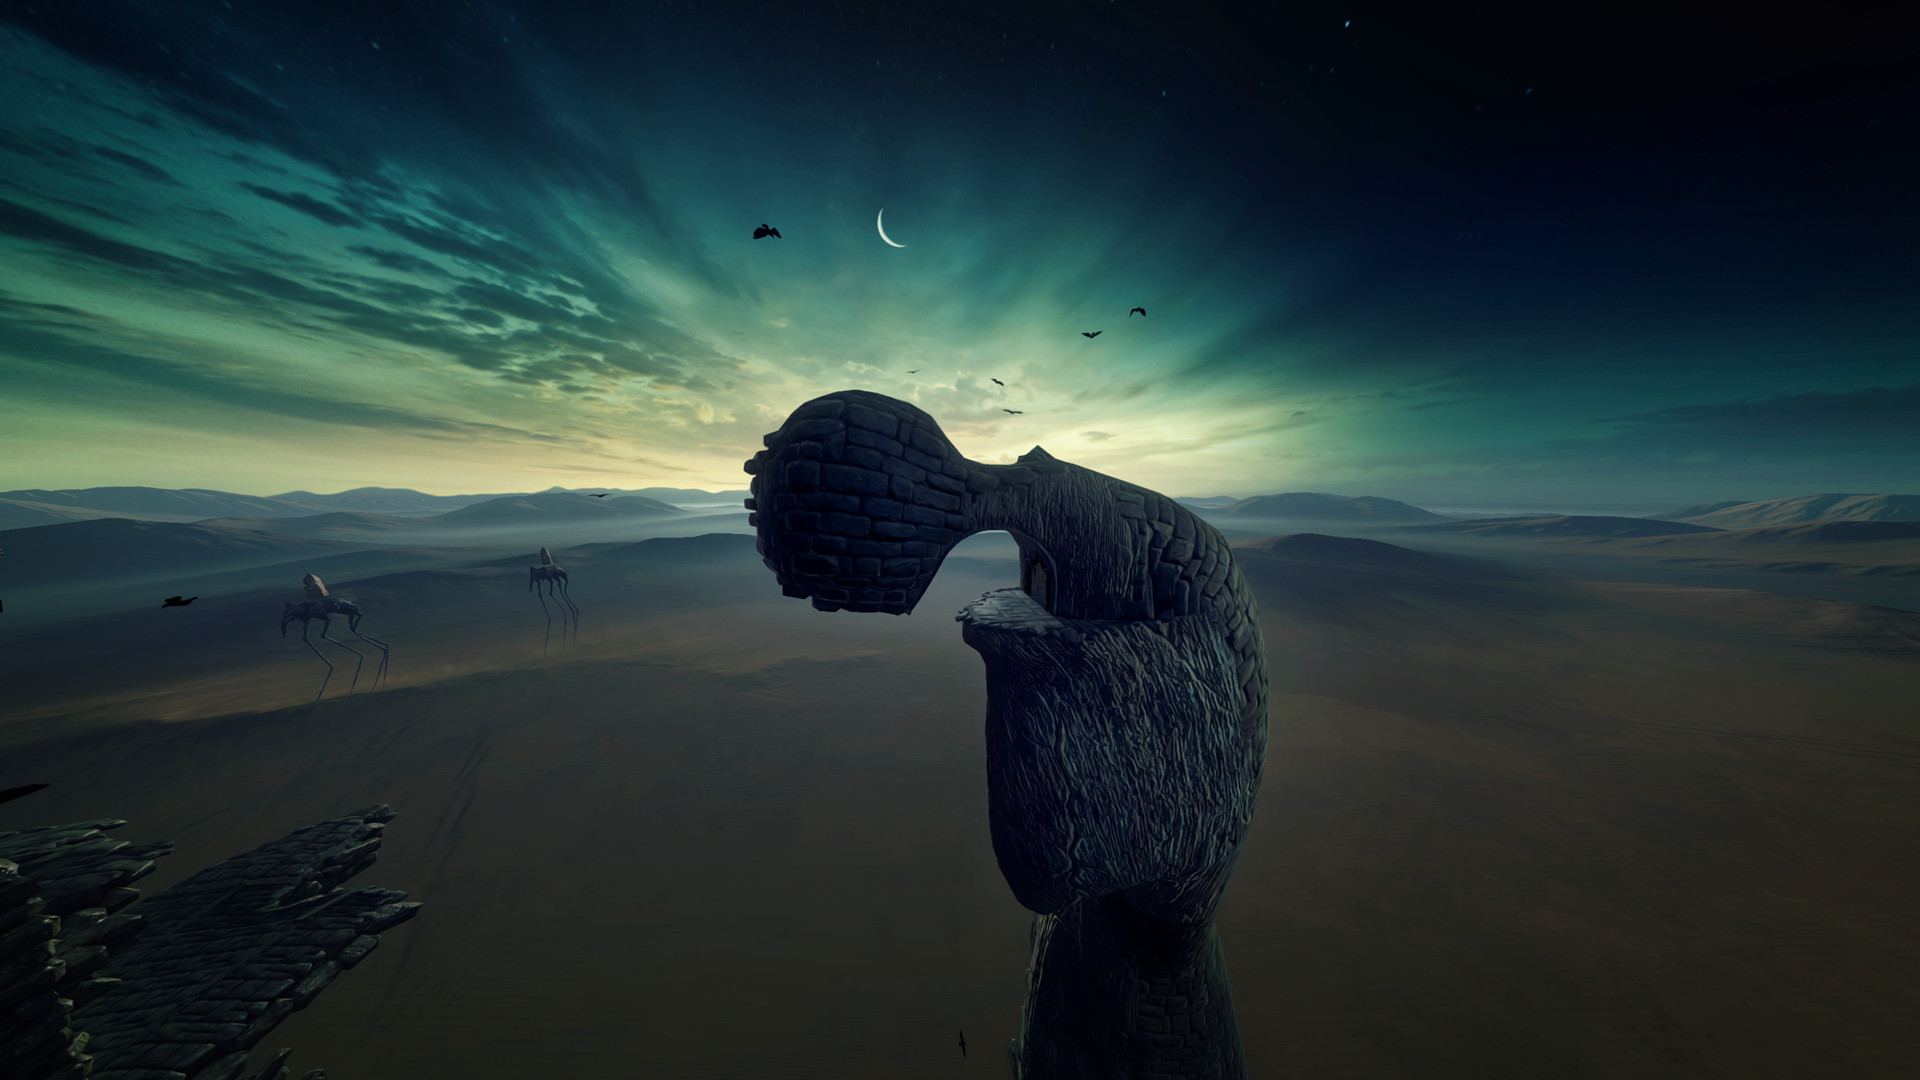 Dreams of Dali on Steam